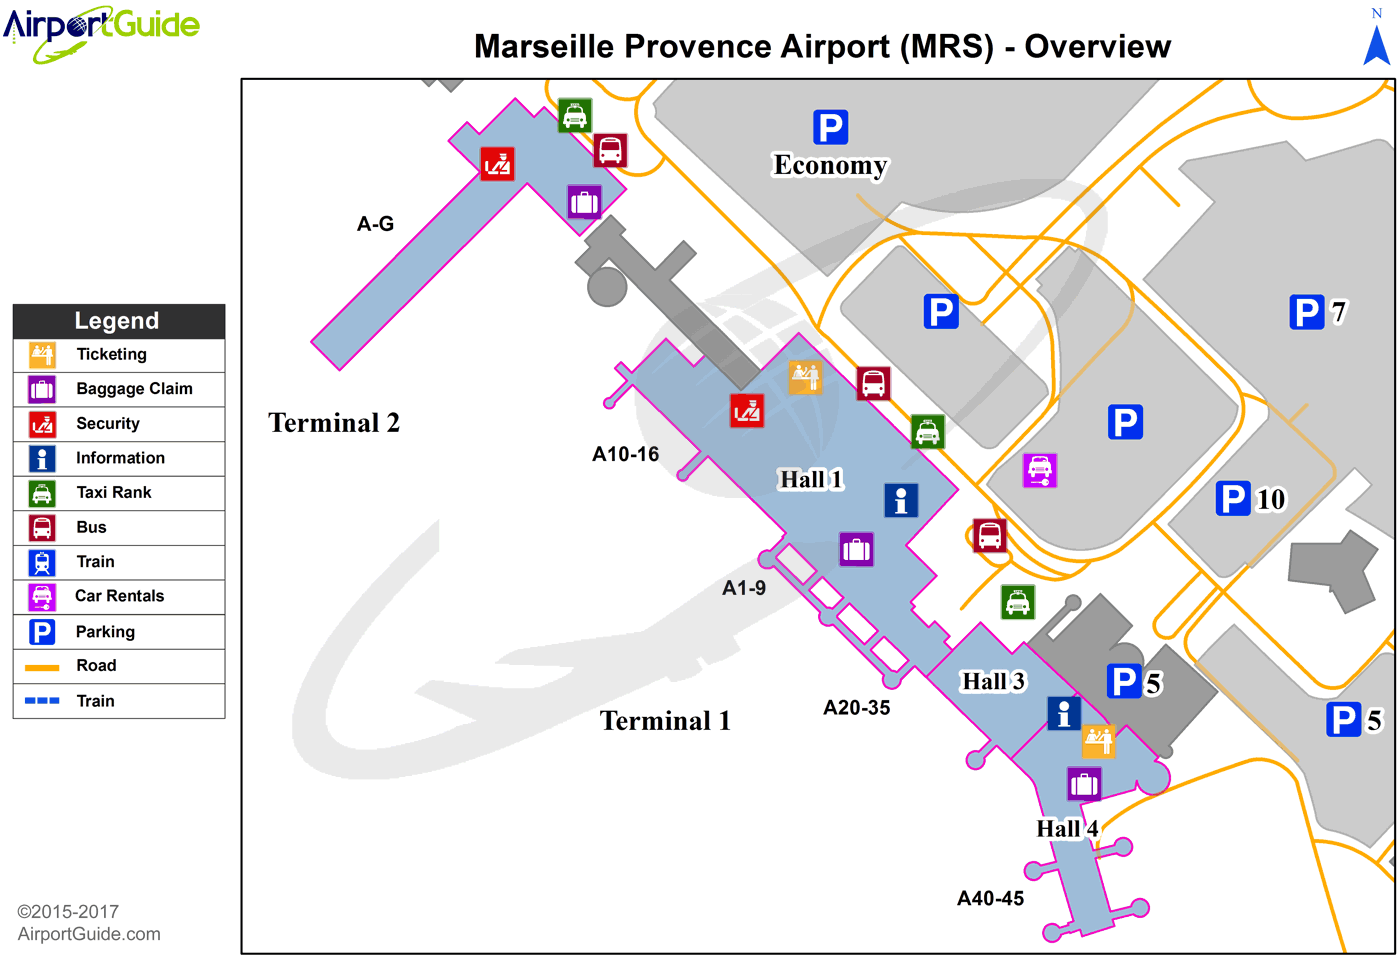 Marseille - Marseille Provence (MRS) Airport Terminal Map - Overview